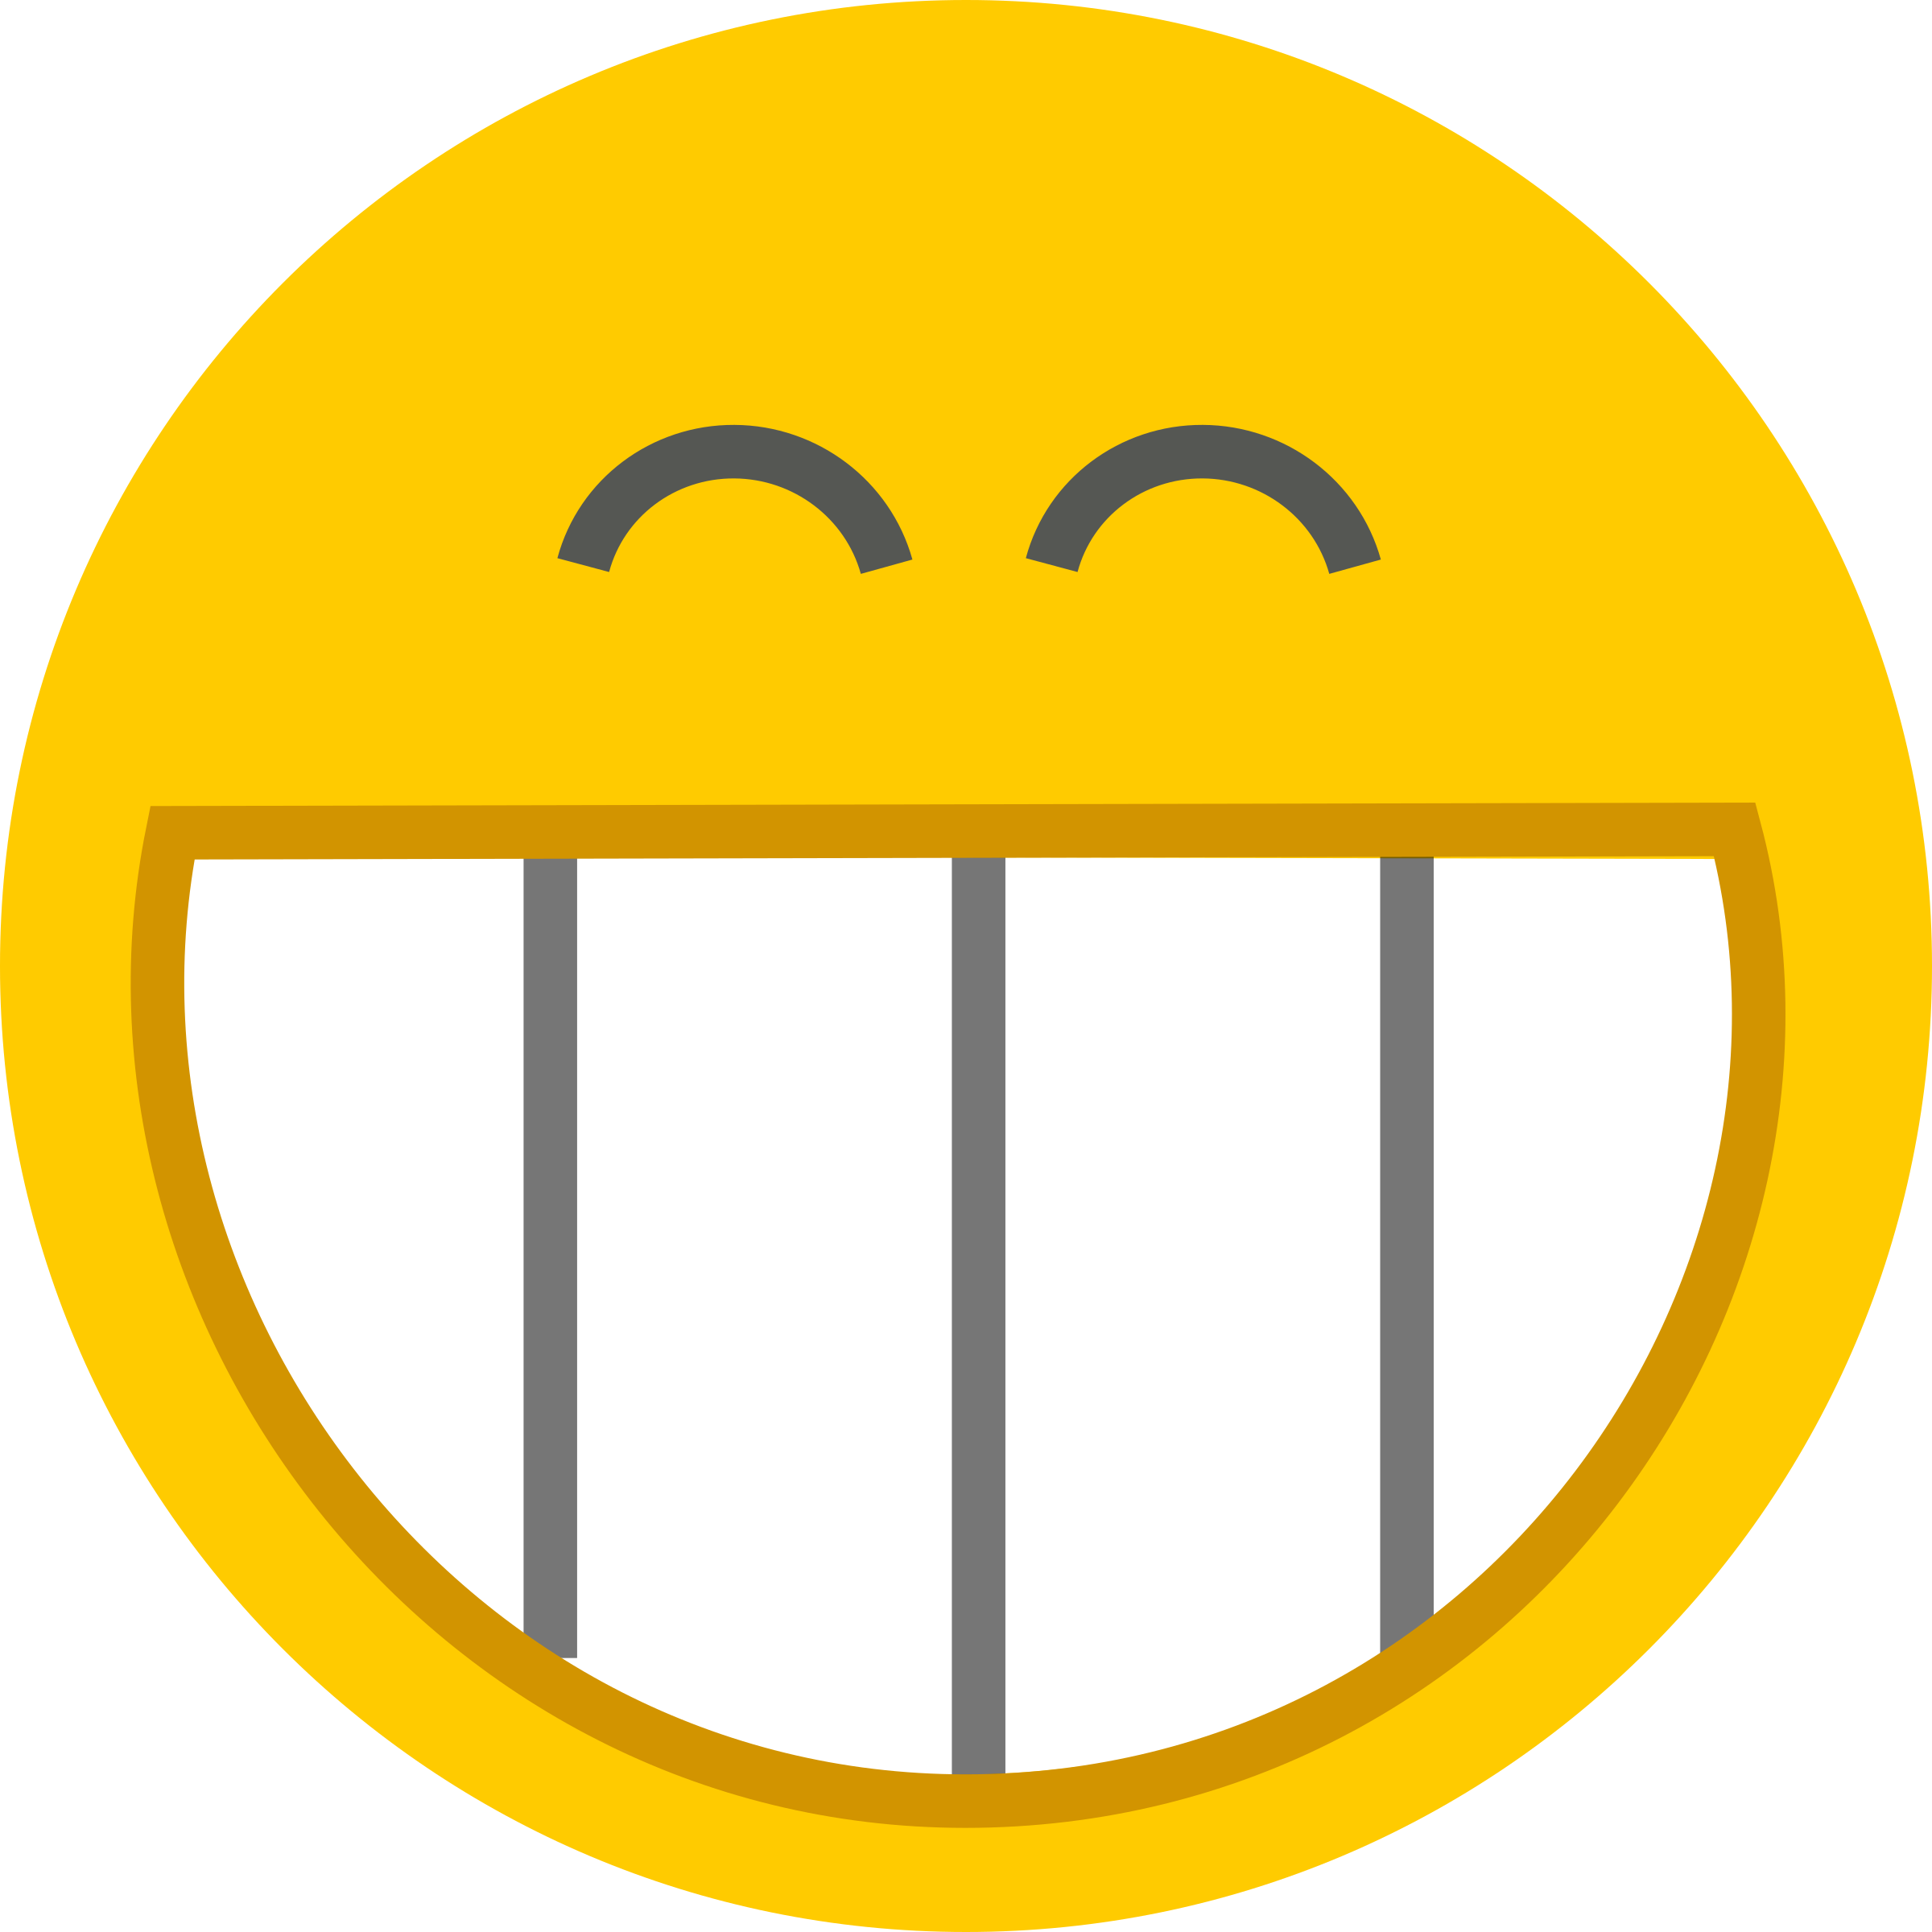 Smile cliparts banner royalty free stock Cartoon smile clip art the cliparts - Clipartix banner royalty free stock